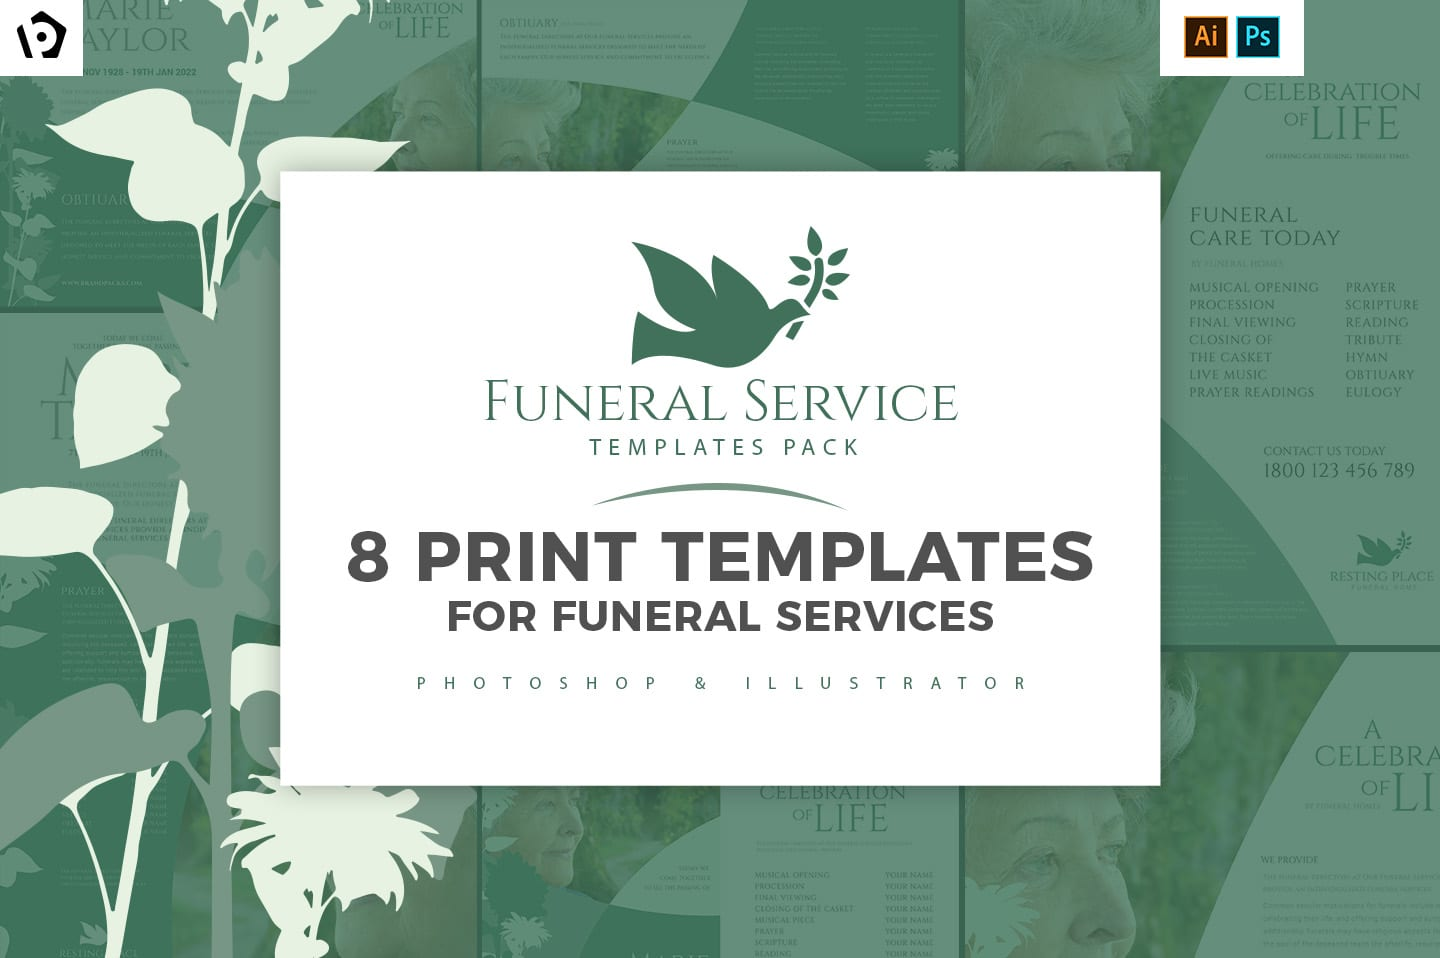 Funeral Service Templates Pack